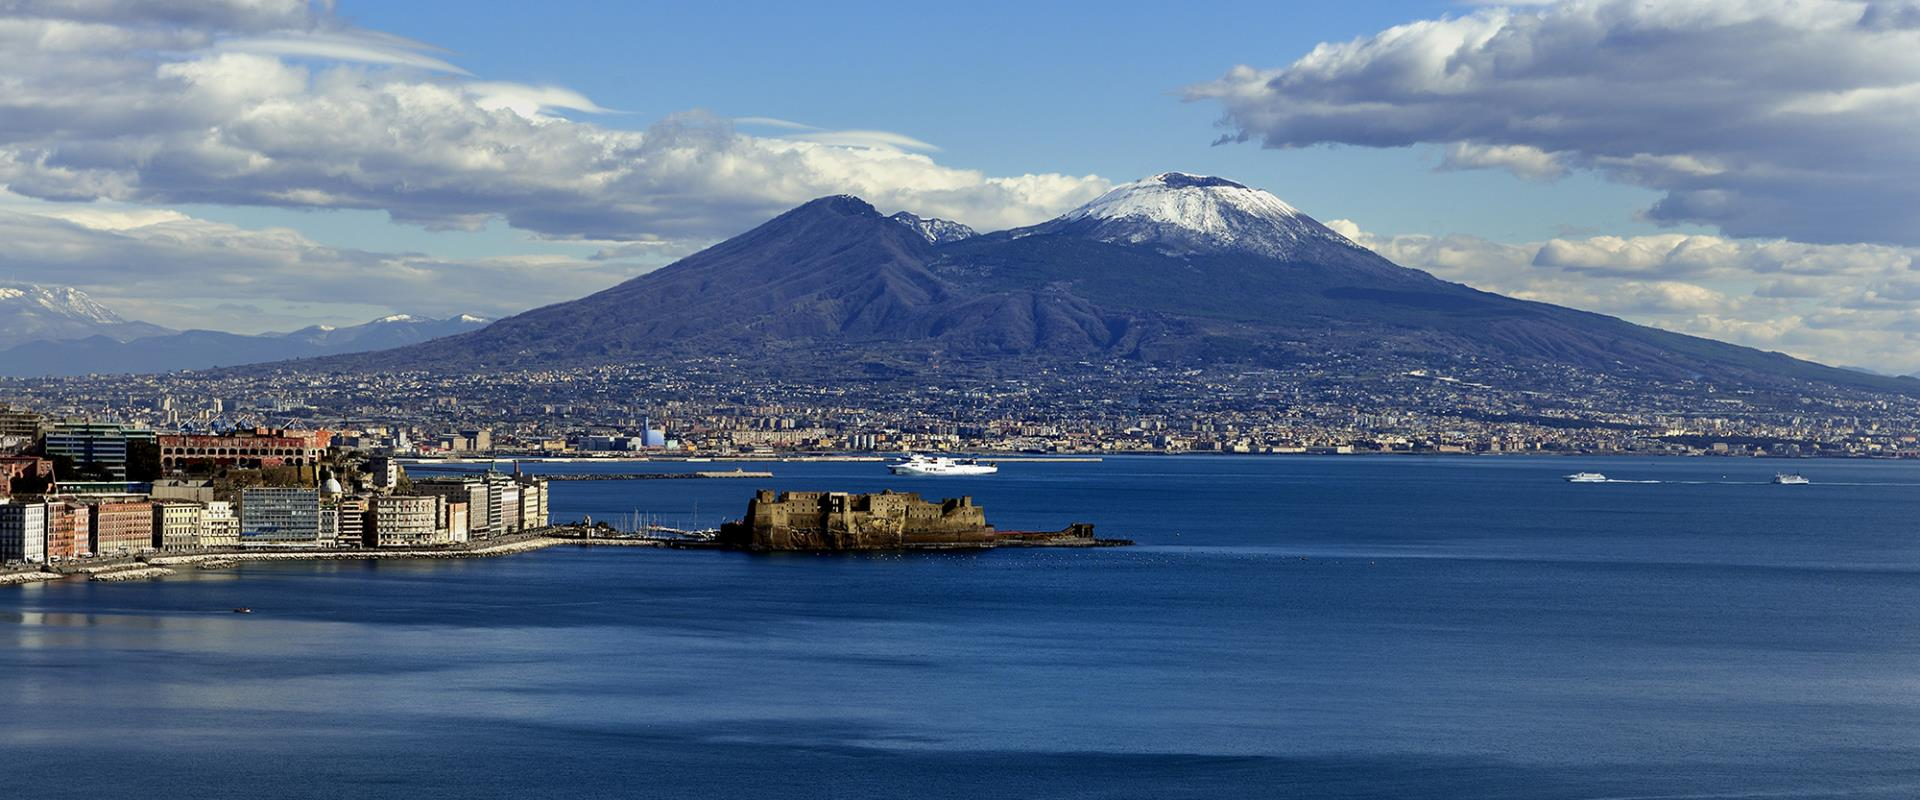 The wonderful view of the Gulf of Naples from Hotel Posillipo